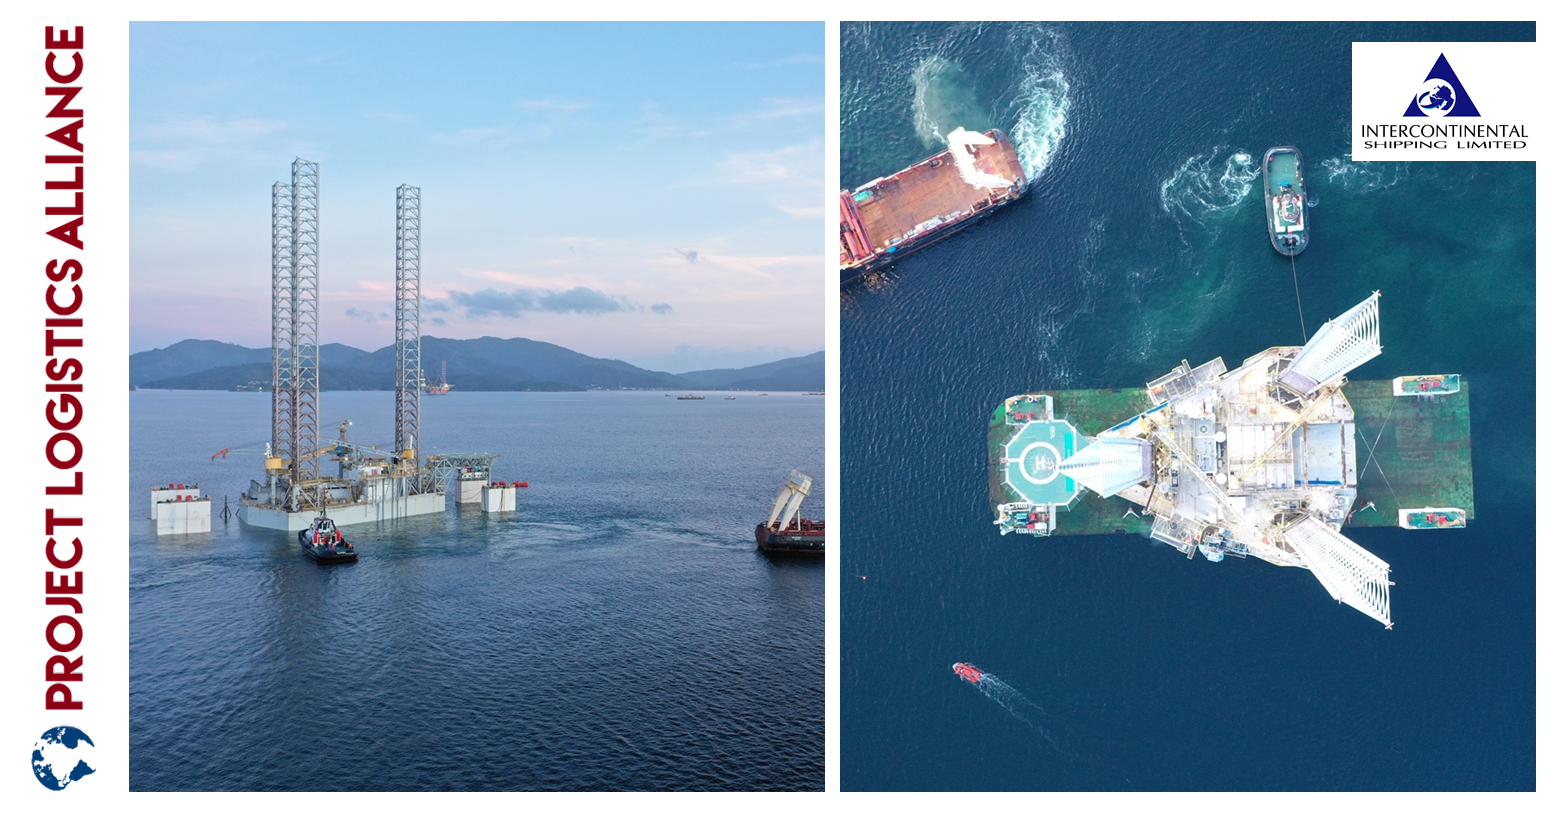 Intercontinental Shipping Completes Jack Up Rig Import to Trinidad